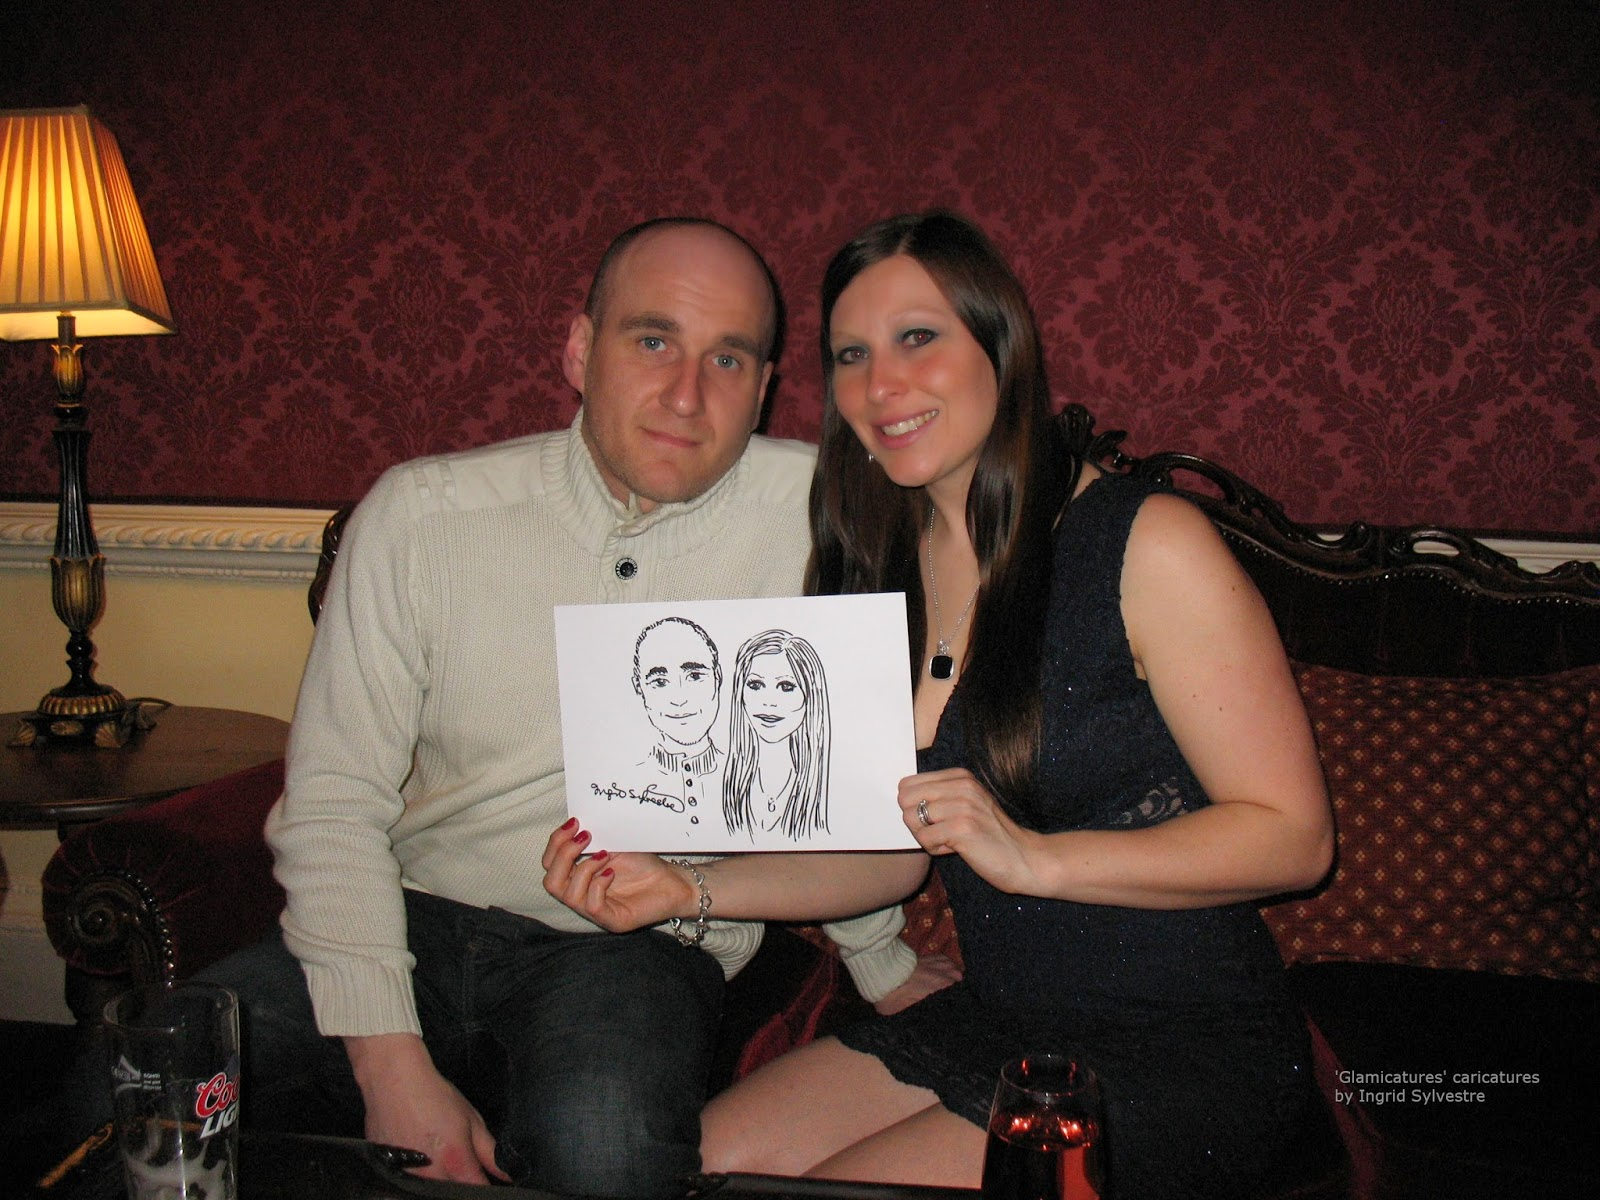 Glamicature wedding caricatures by UK caricaturist Ingrid Sylvestre - the wedding of Hannah and David at Lumley Castle Hotel County Durham North East UK